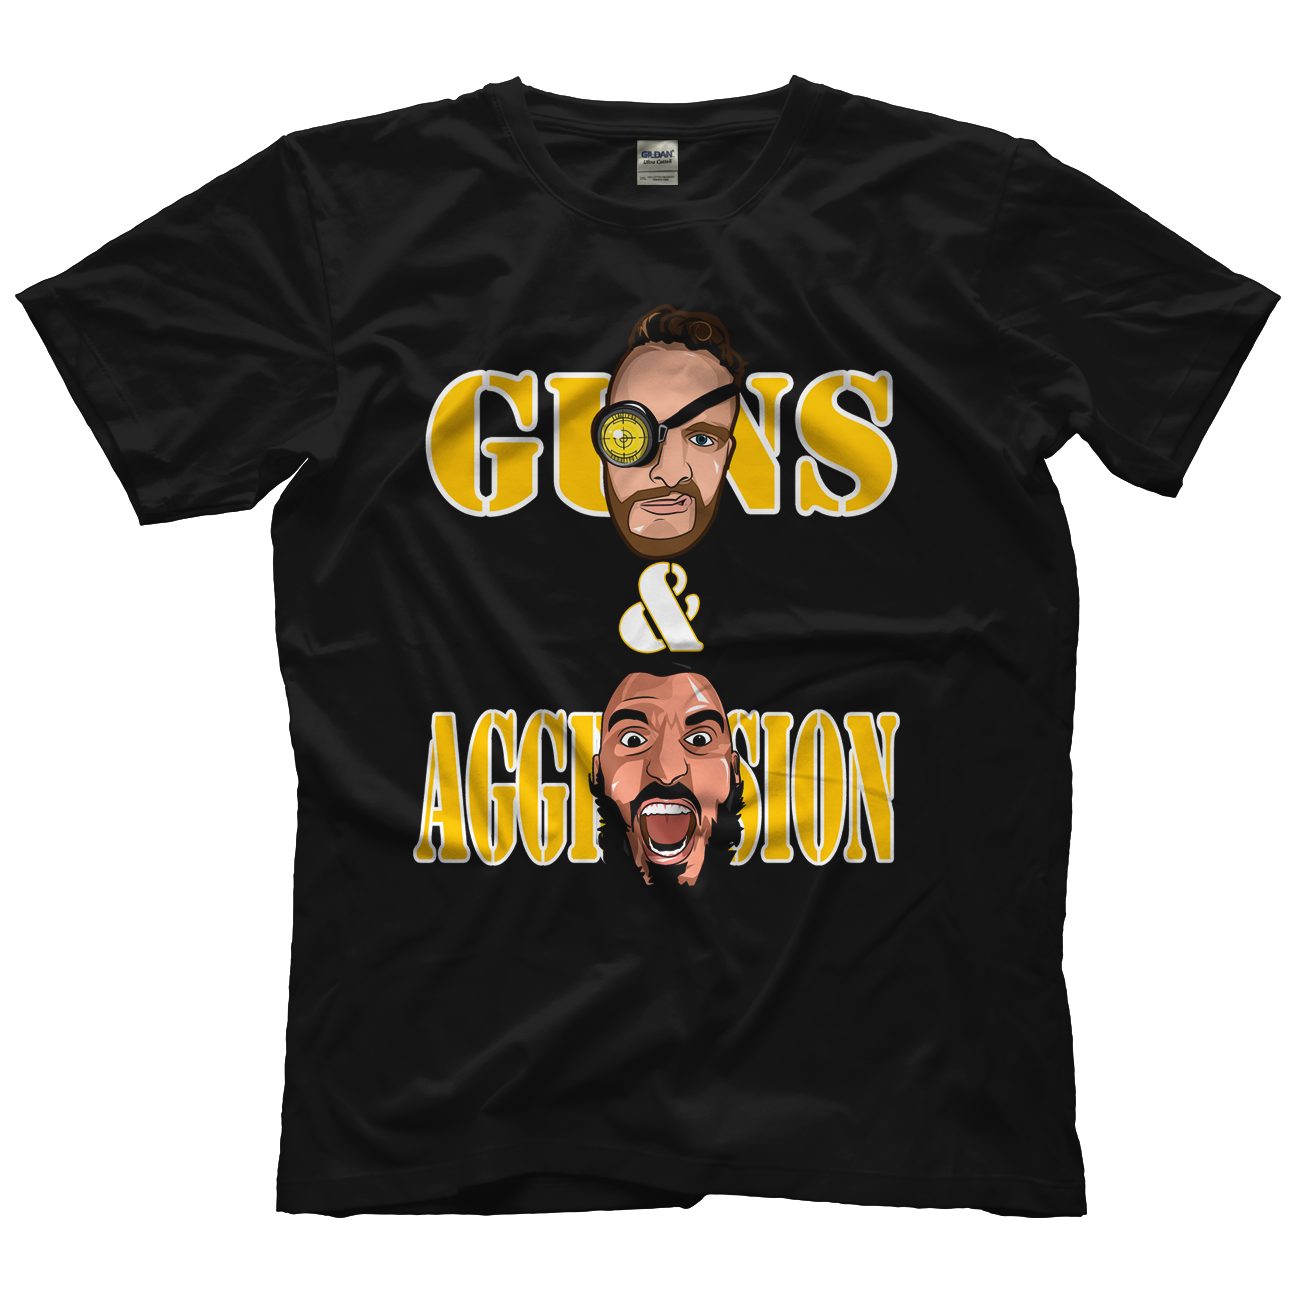 Guns and Aggression T-shirt